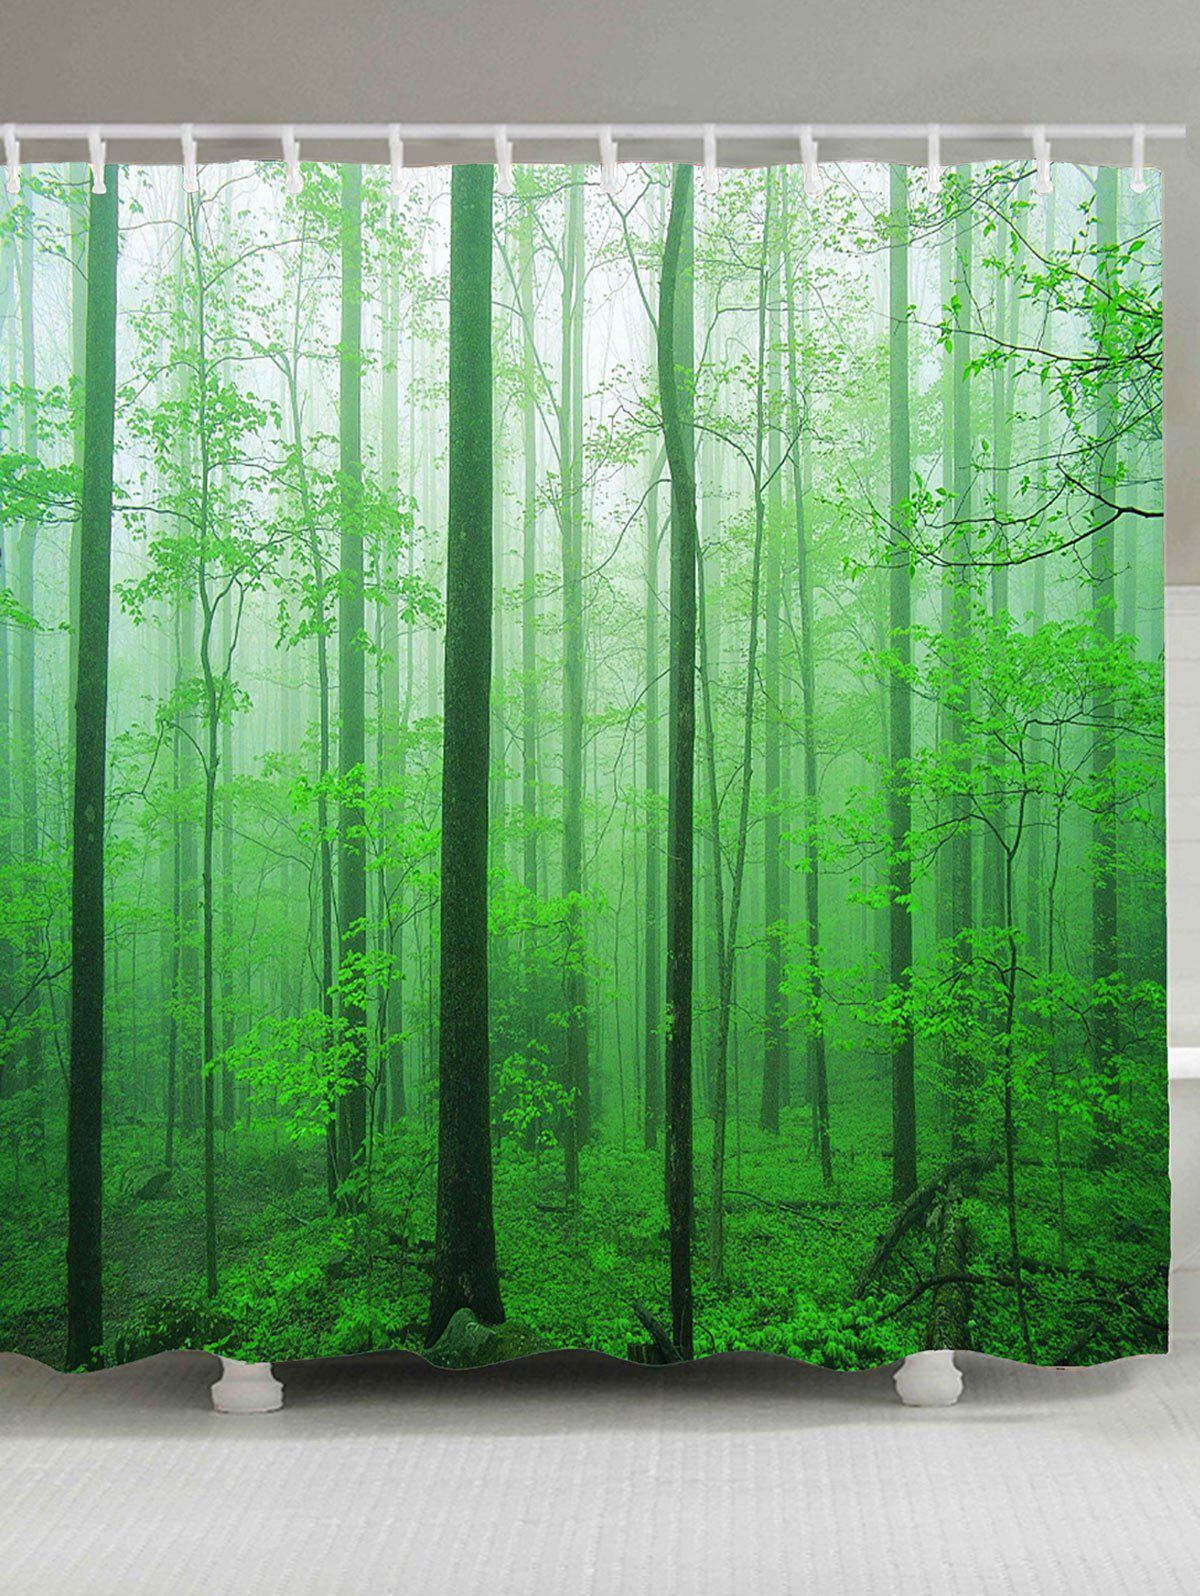 2018 Waterproof Foggy Forest Tree Shower Curtain Green W Inch L Inch In Shower Curtains Online